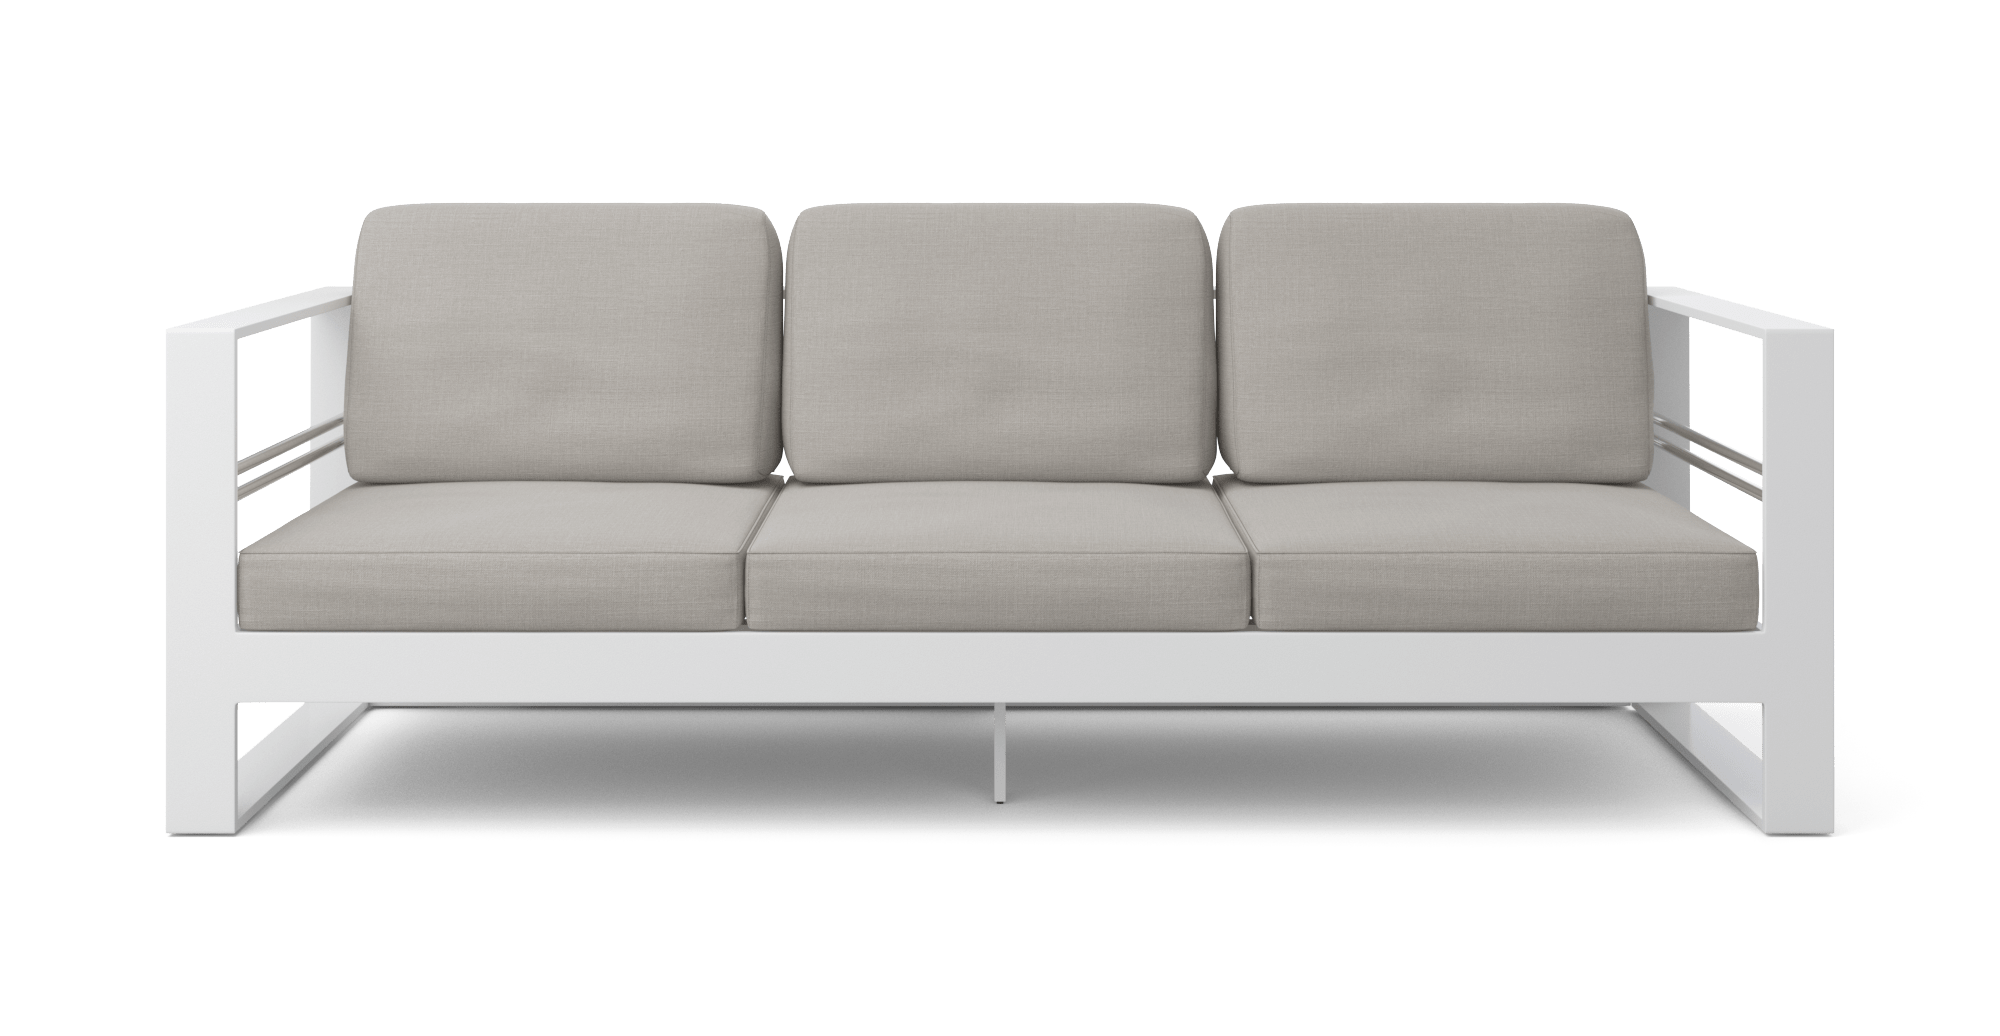 Buy Airlie Outdoor 3 Seater Sofa line in Australia